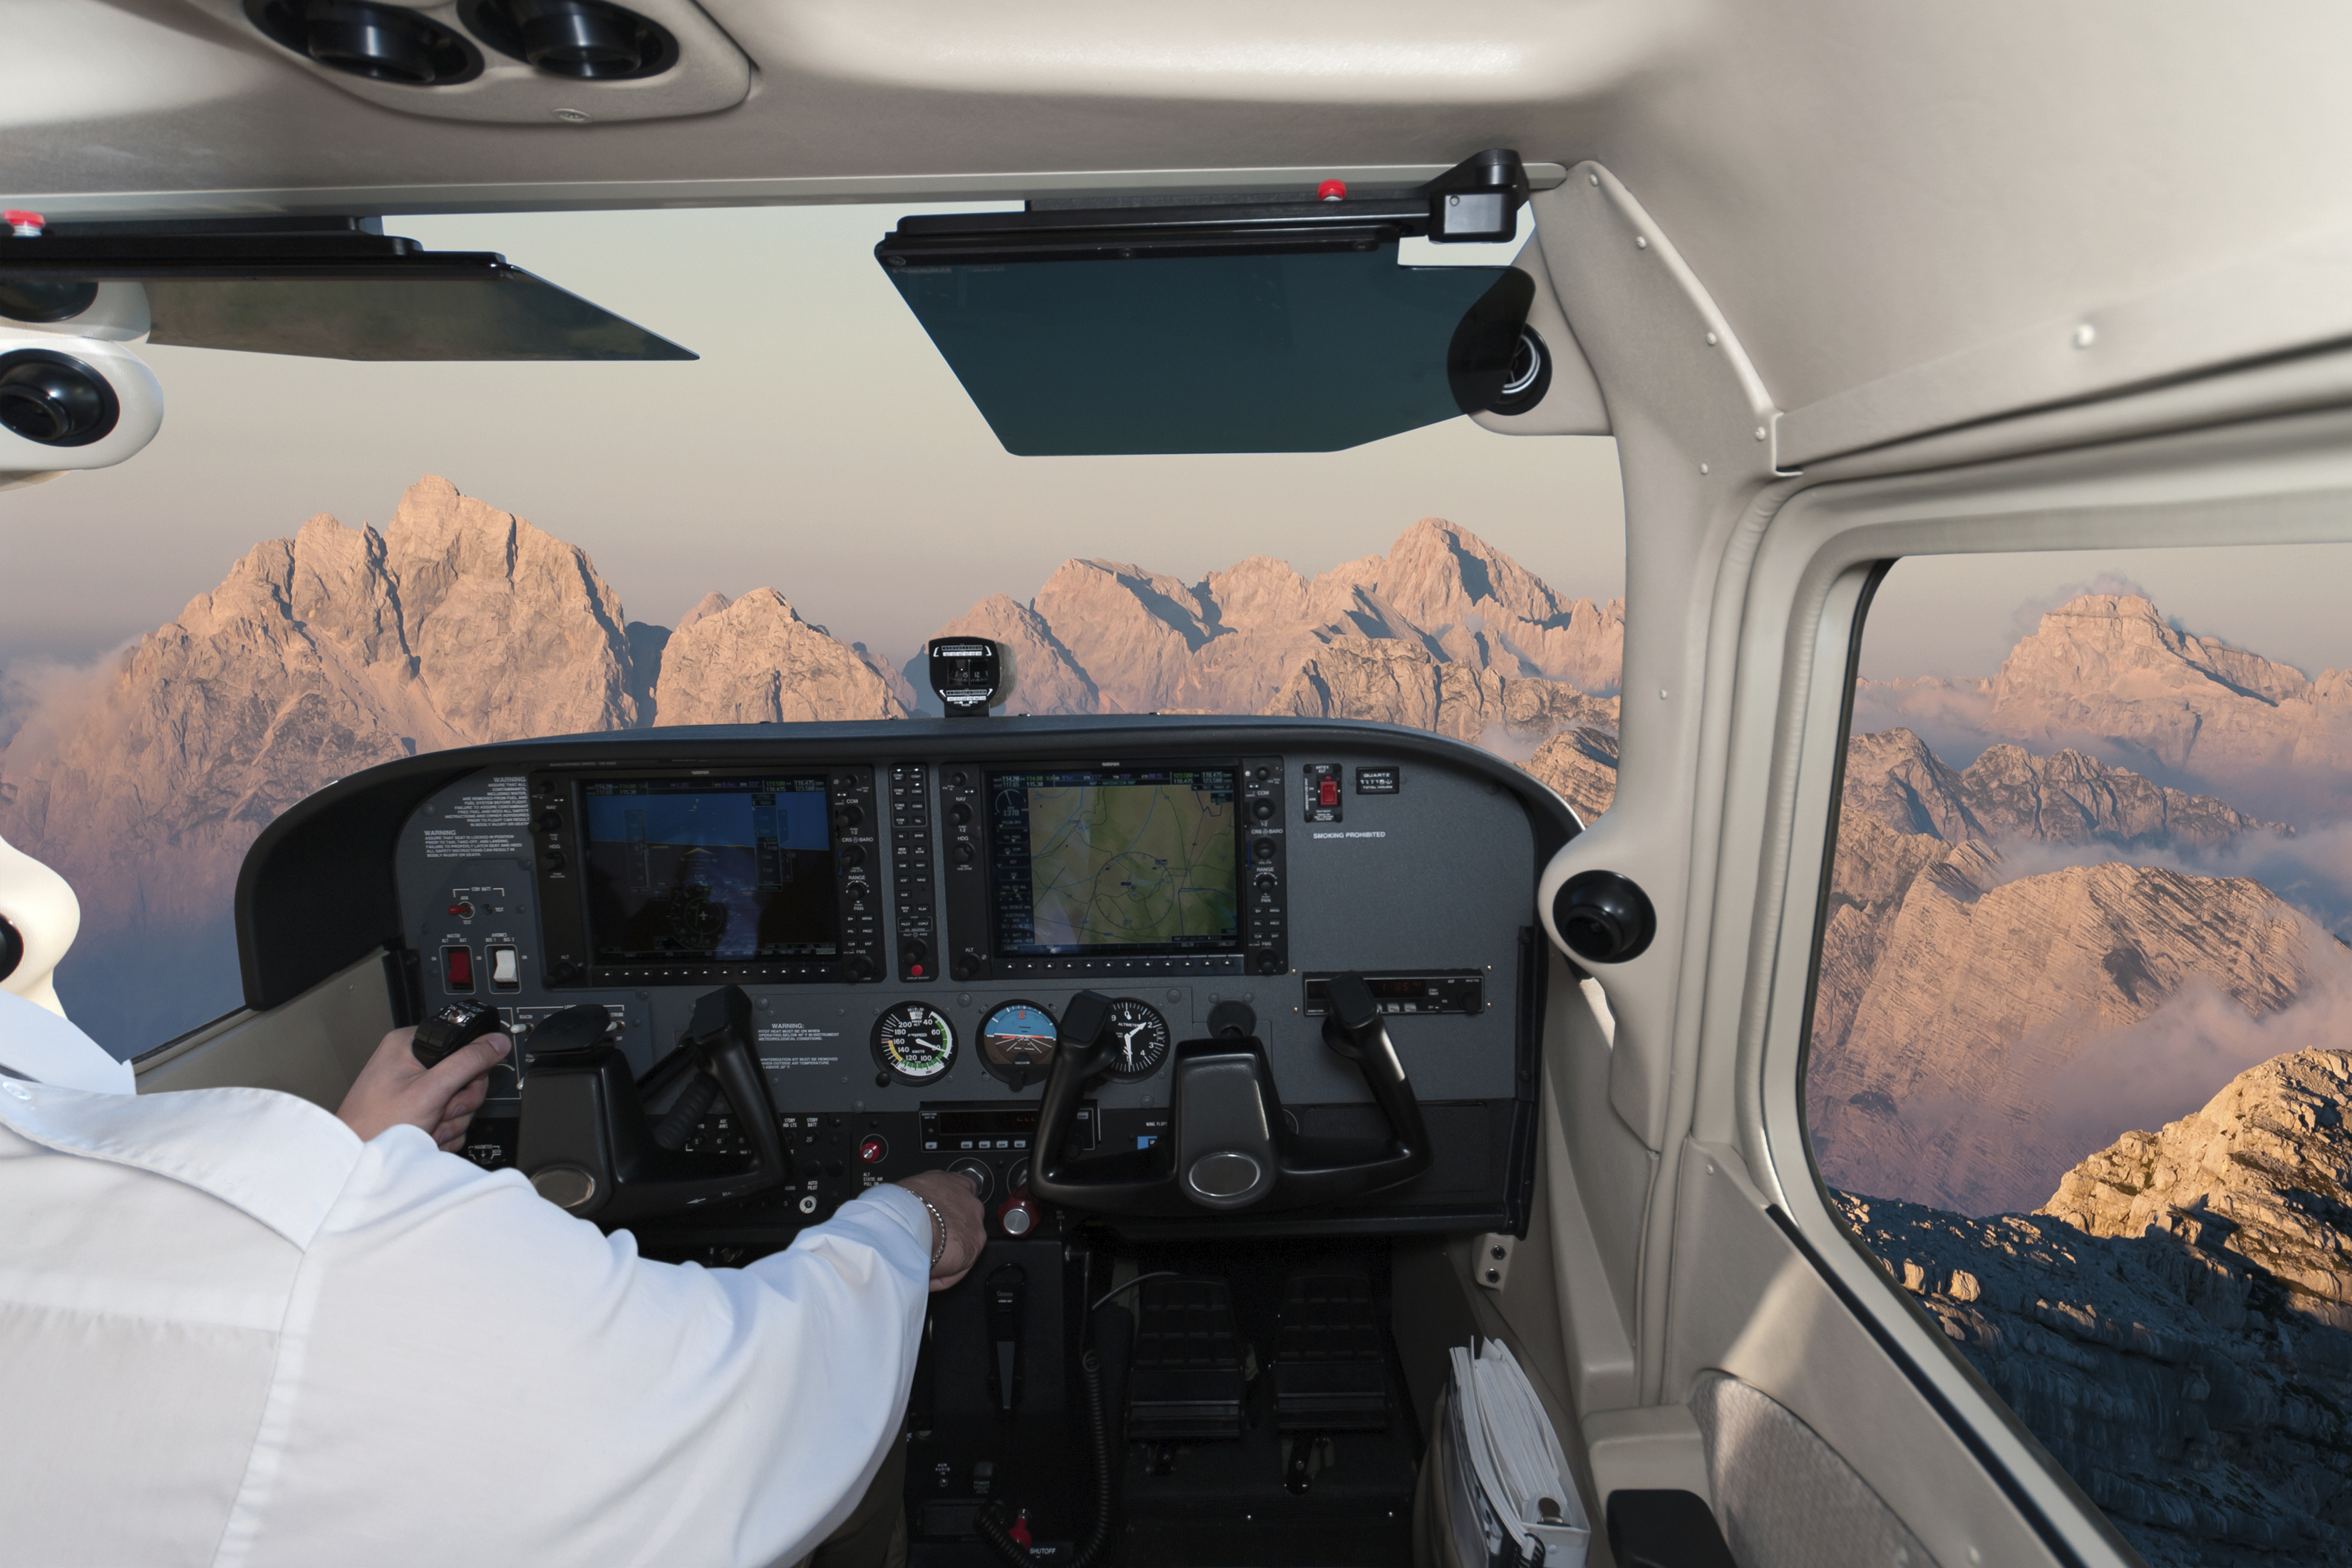 Flying for Business: Avionics for the Hard IFR Pilot